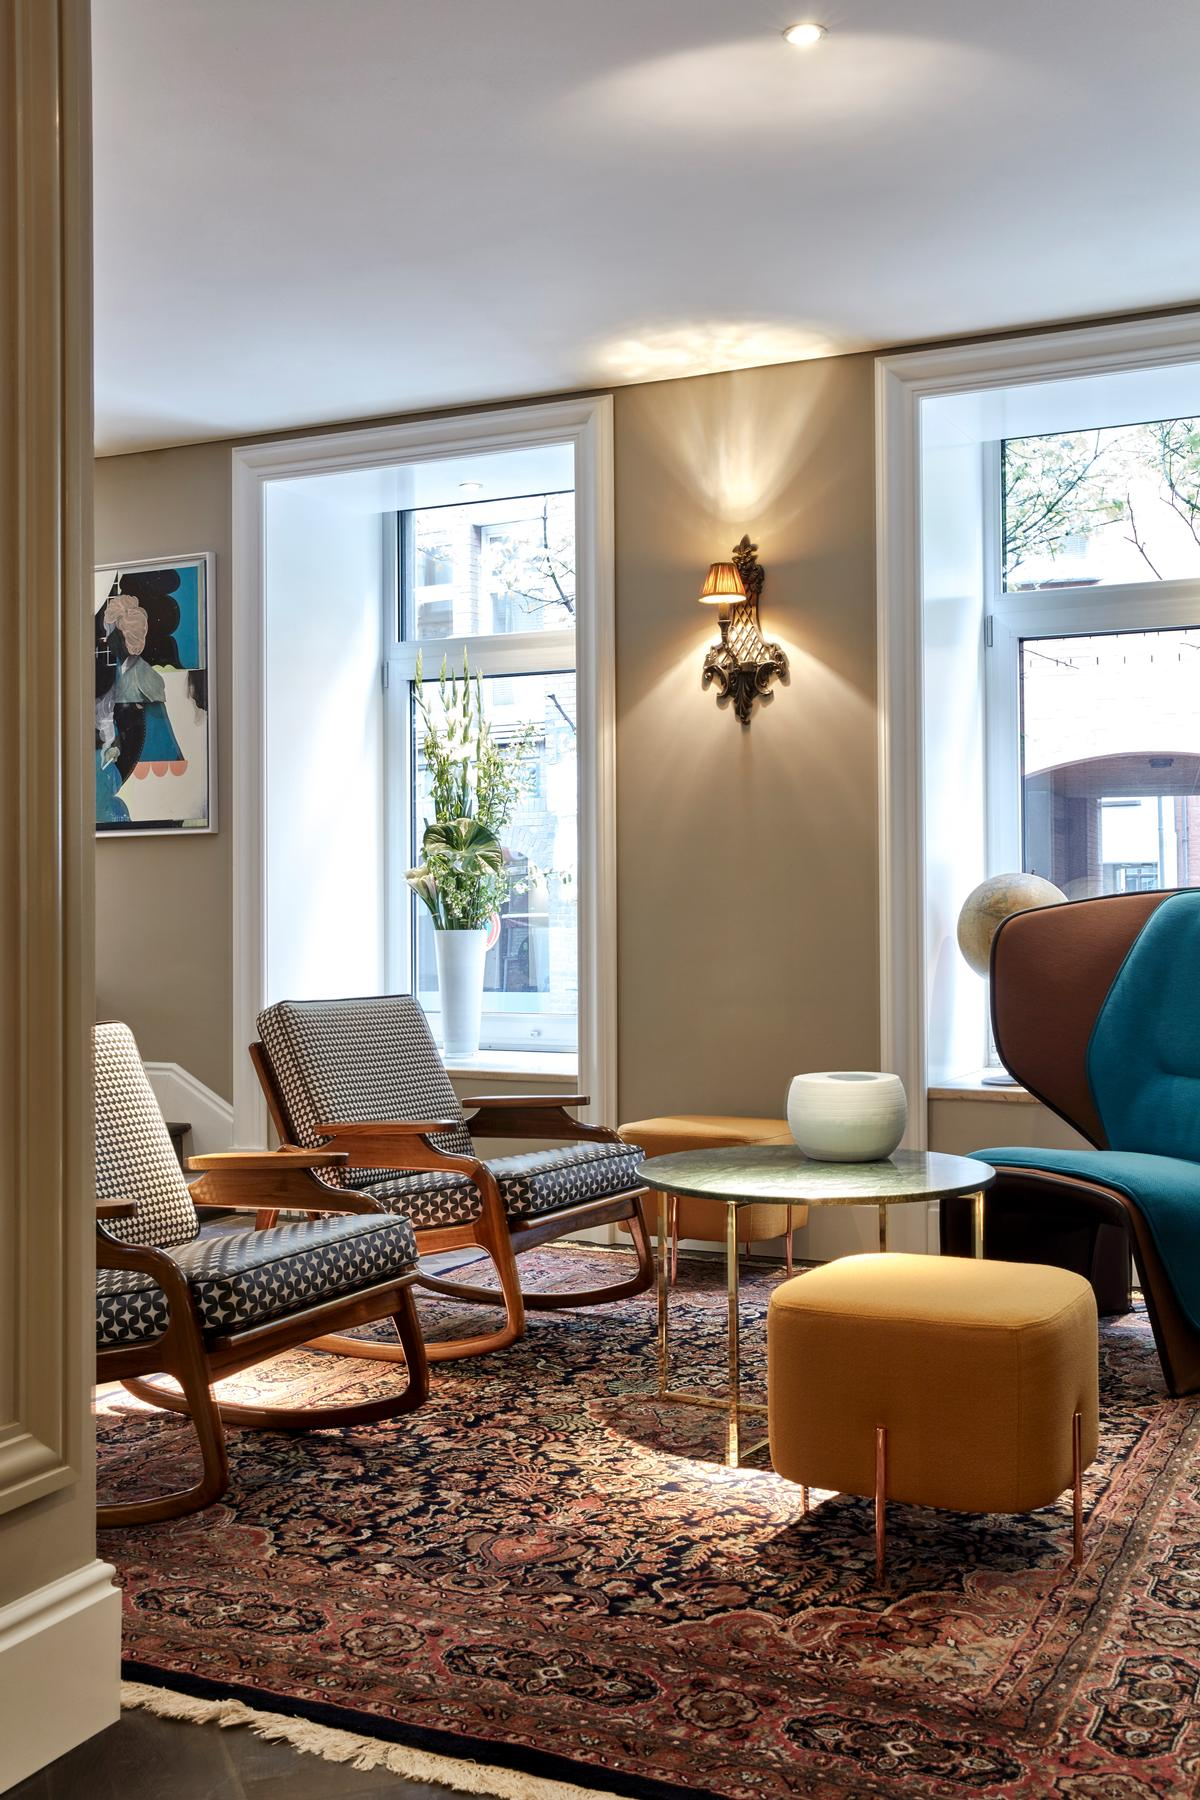 The hotel's guest rooms and side terraces look out at the café-lined waterways of the Nikolaifleet canal and the Altstadt Old Town beyond / Design Hotels